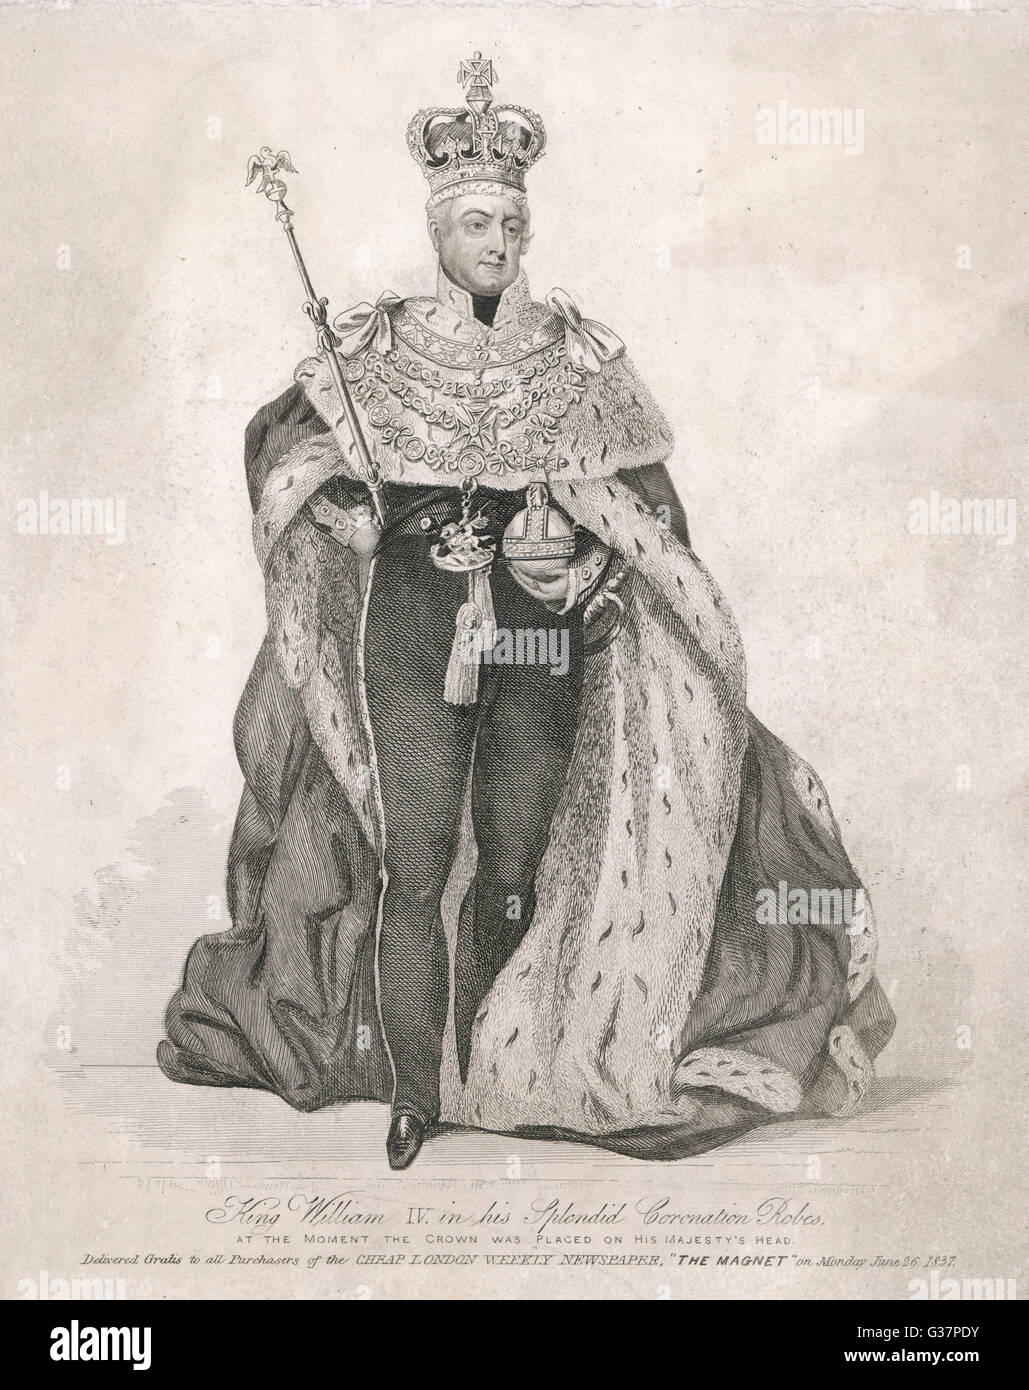 WILLIAM IV KING OF ENGLAND in his coronation robes        Date: 1765 - 1837 - Stock Image